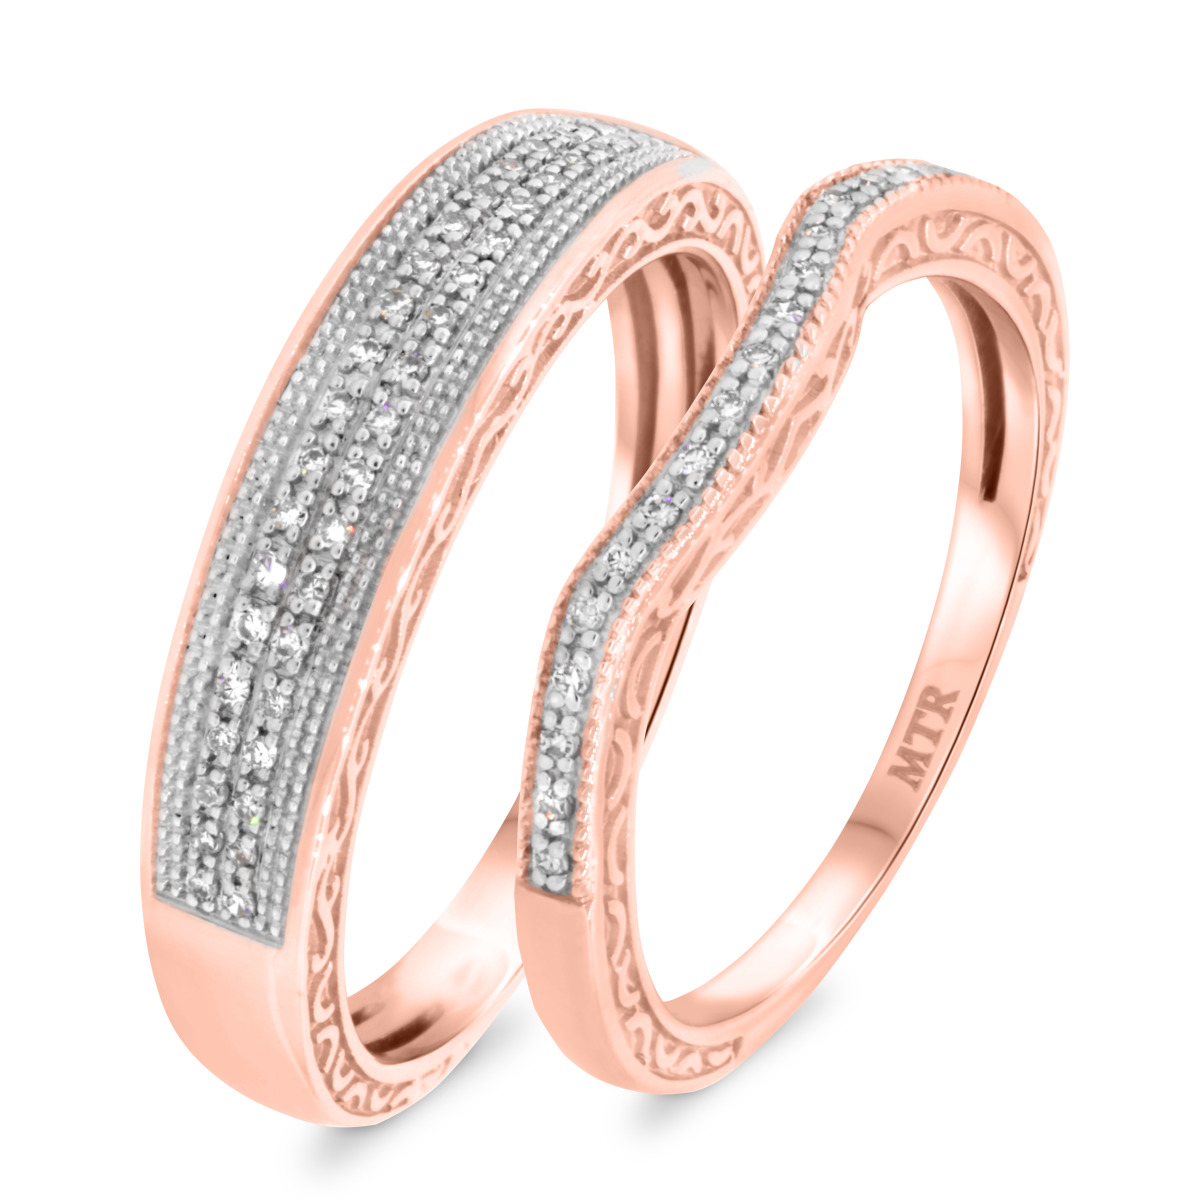 1/4 CT. T.W. Diamond Matching Wedding Band Set 14K Rose Gold